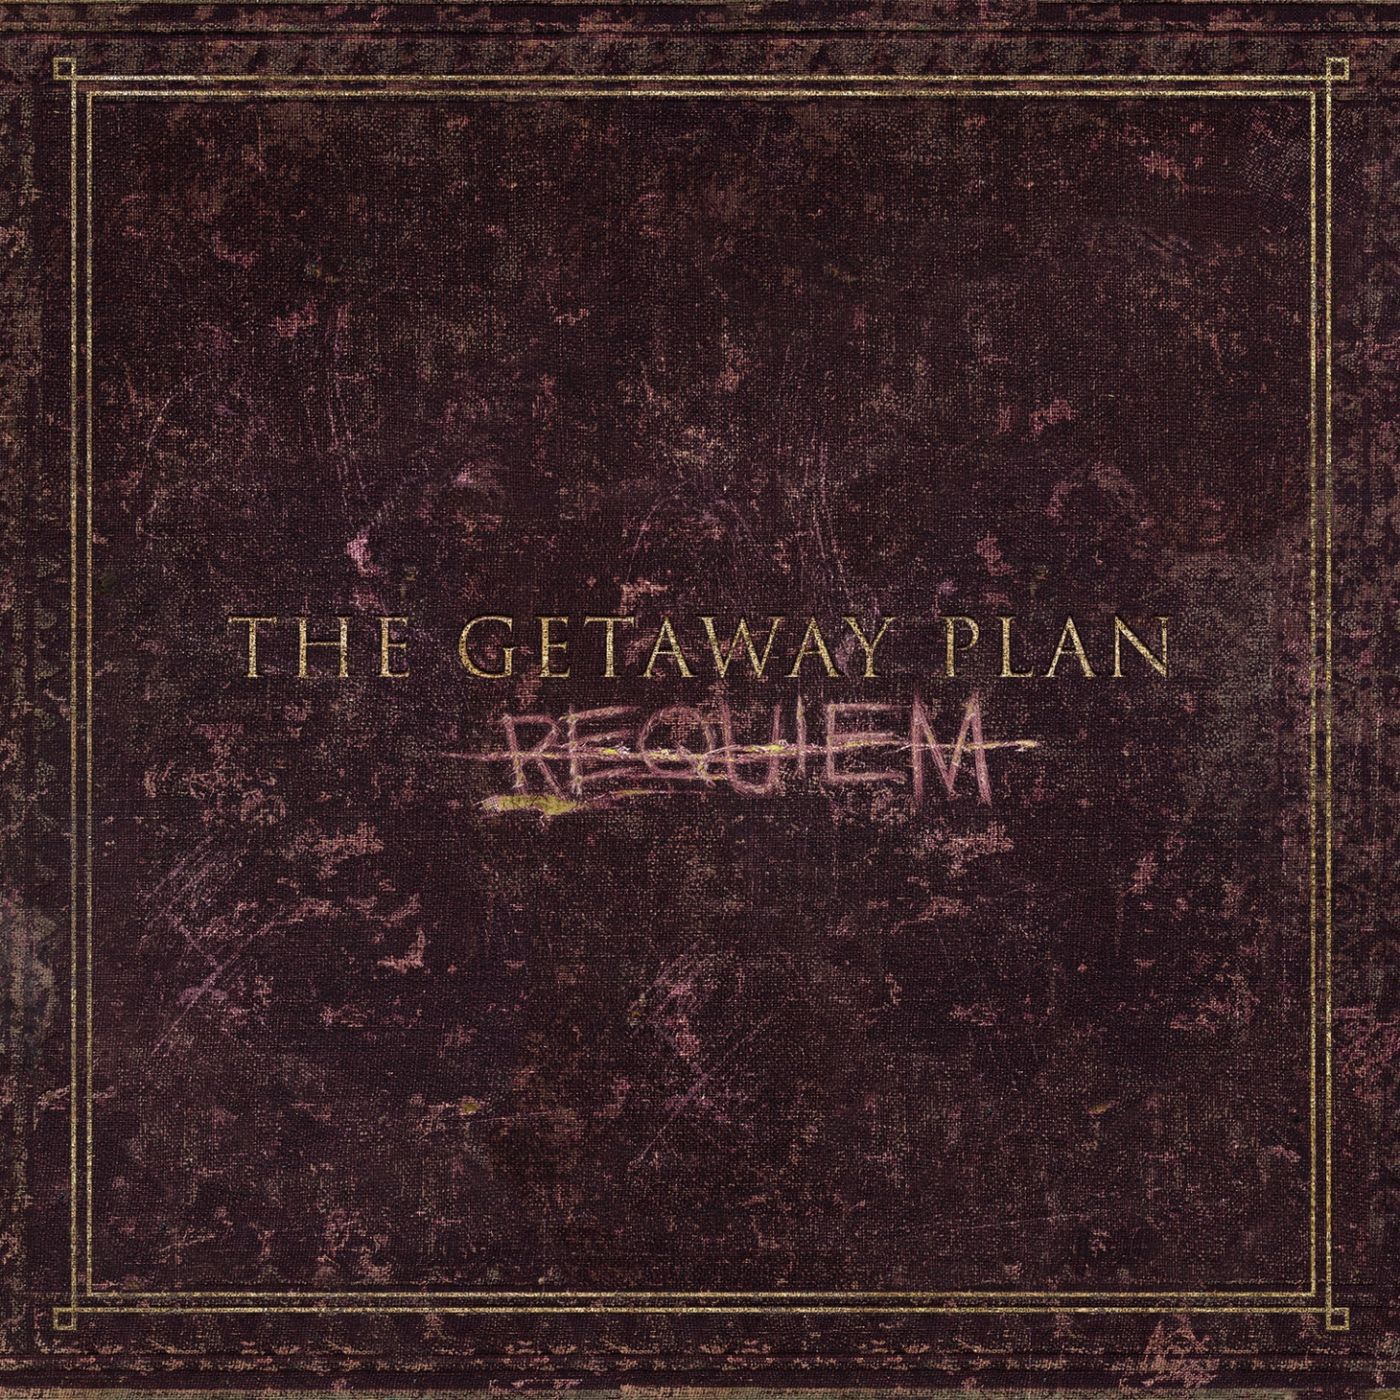 The Getaway Plan - Requiem (2011)